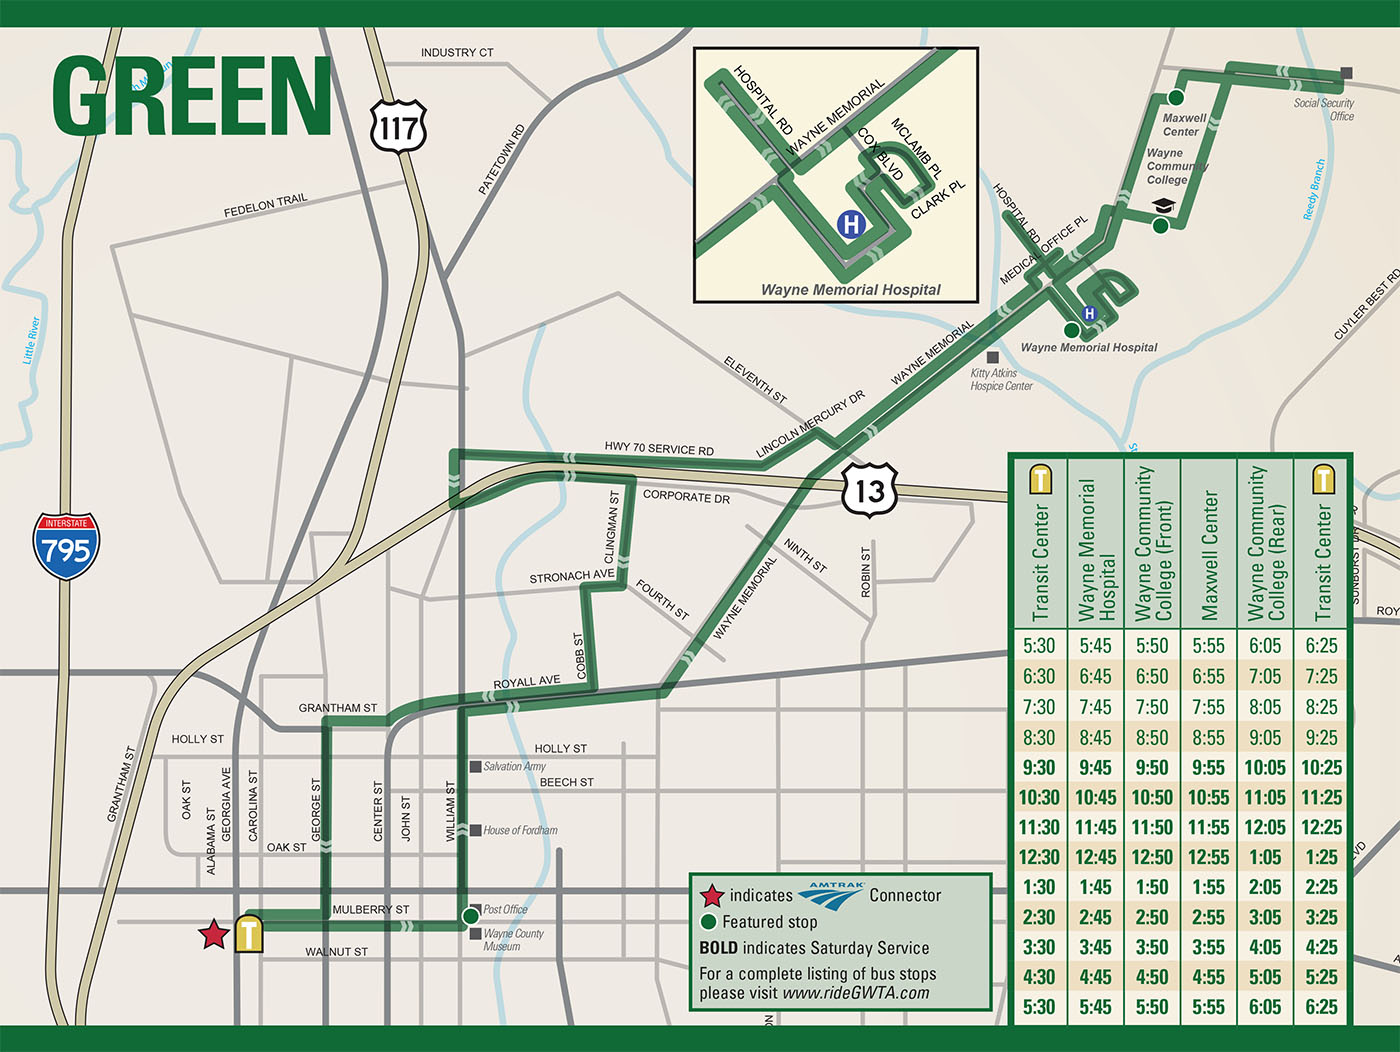 GWTA Green Route Schedule map